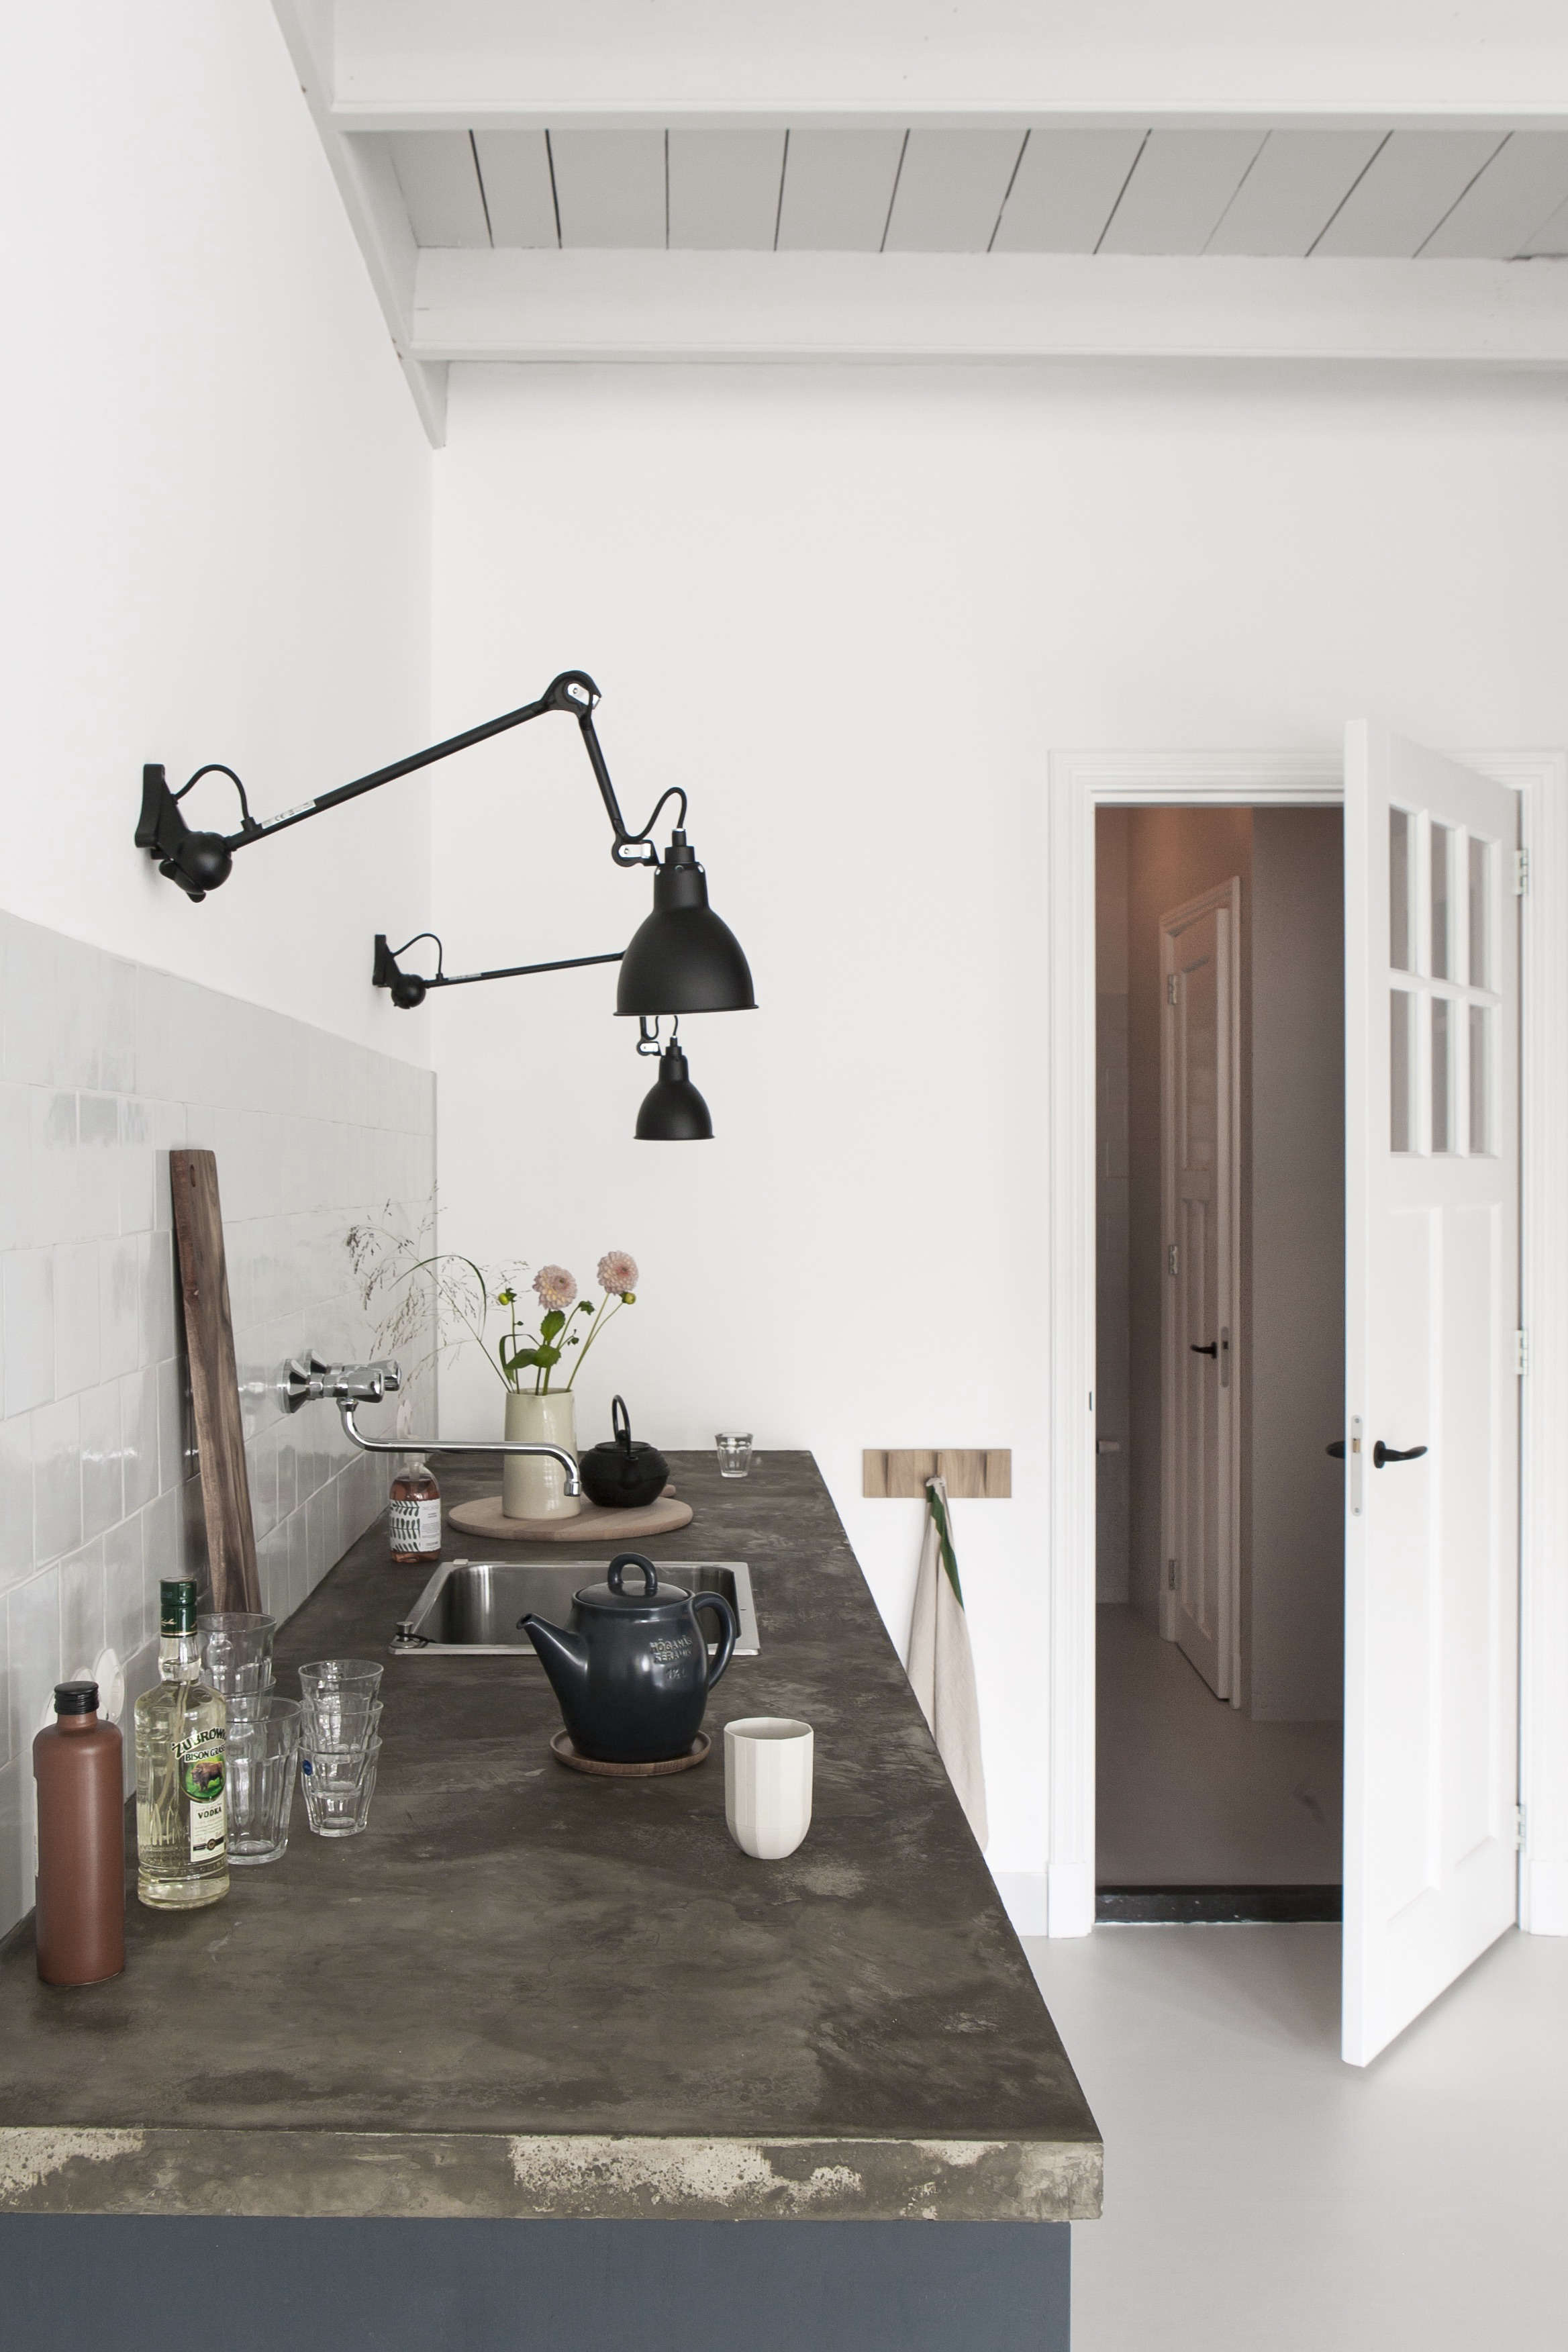 the adjustable sconcesarefrench classics bylampe gras. 12